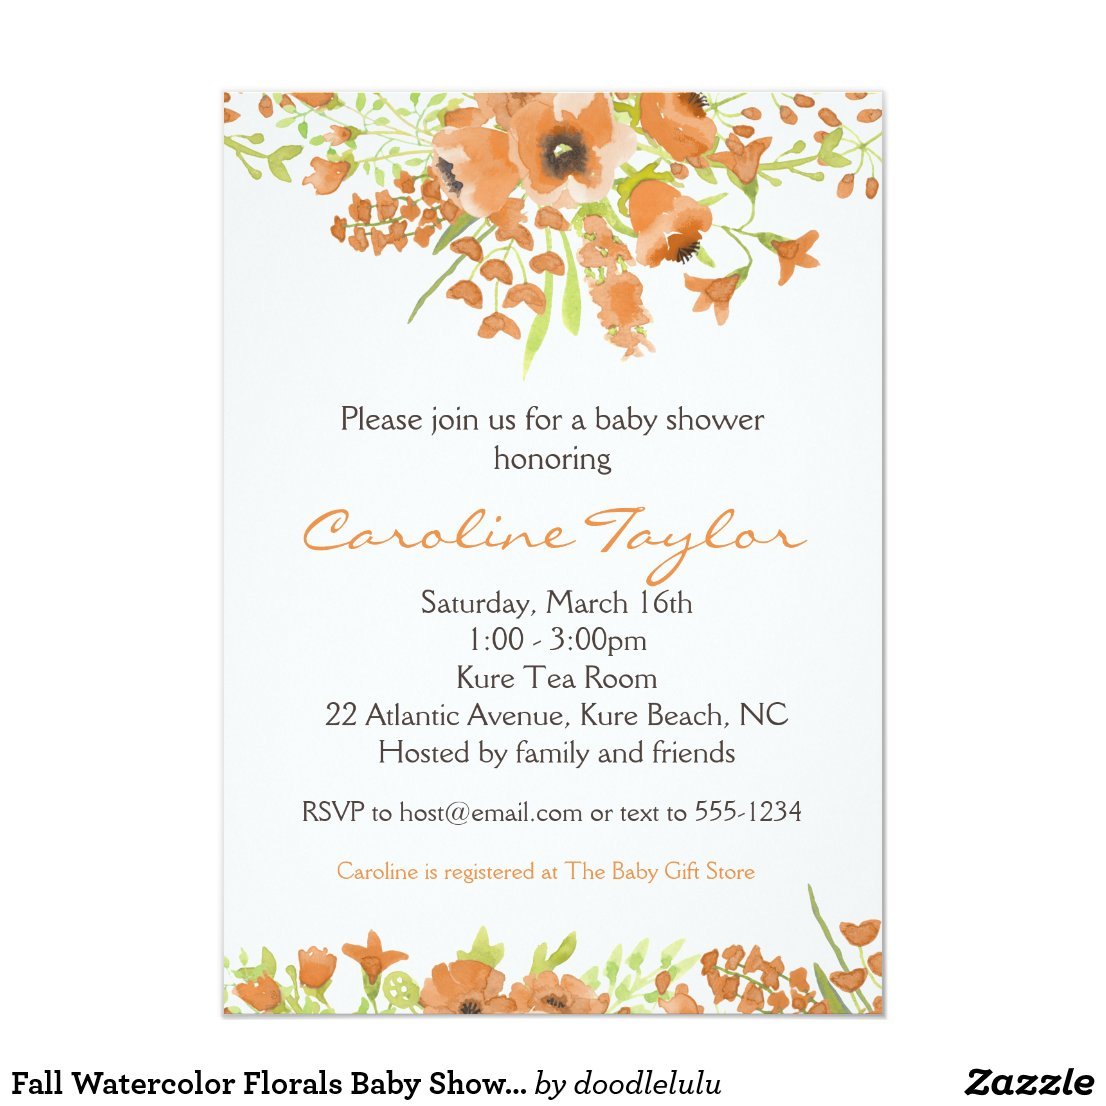 Fall Watercolor Florals Baby Shower Invitation